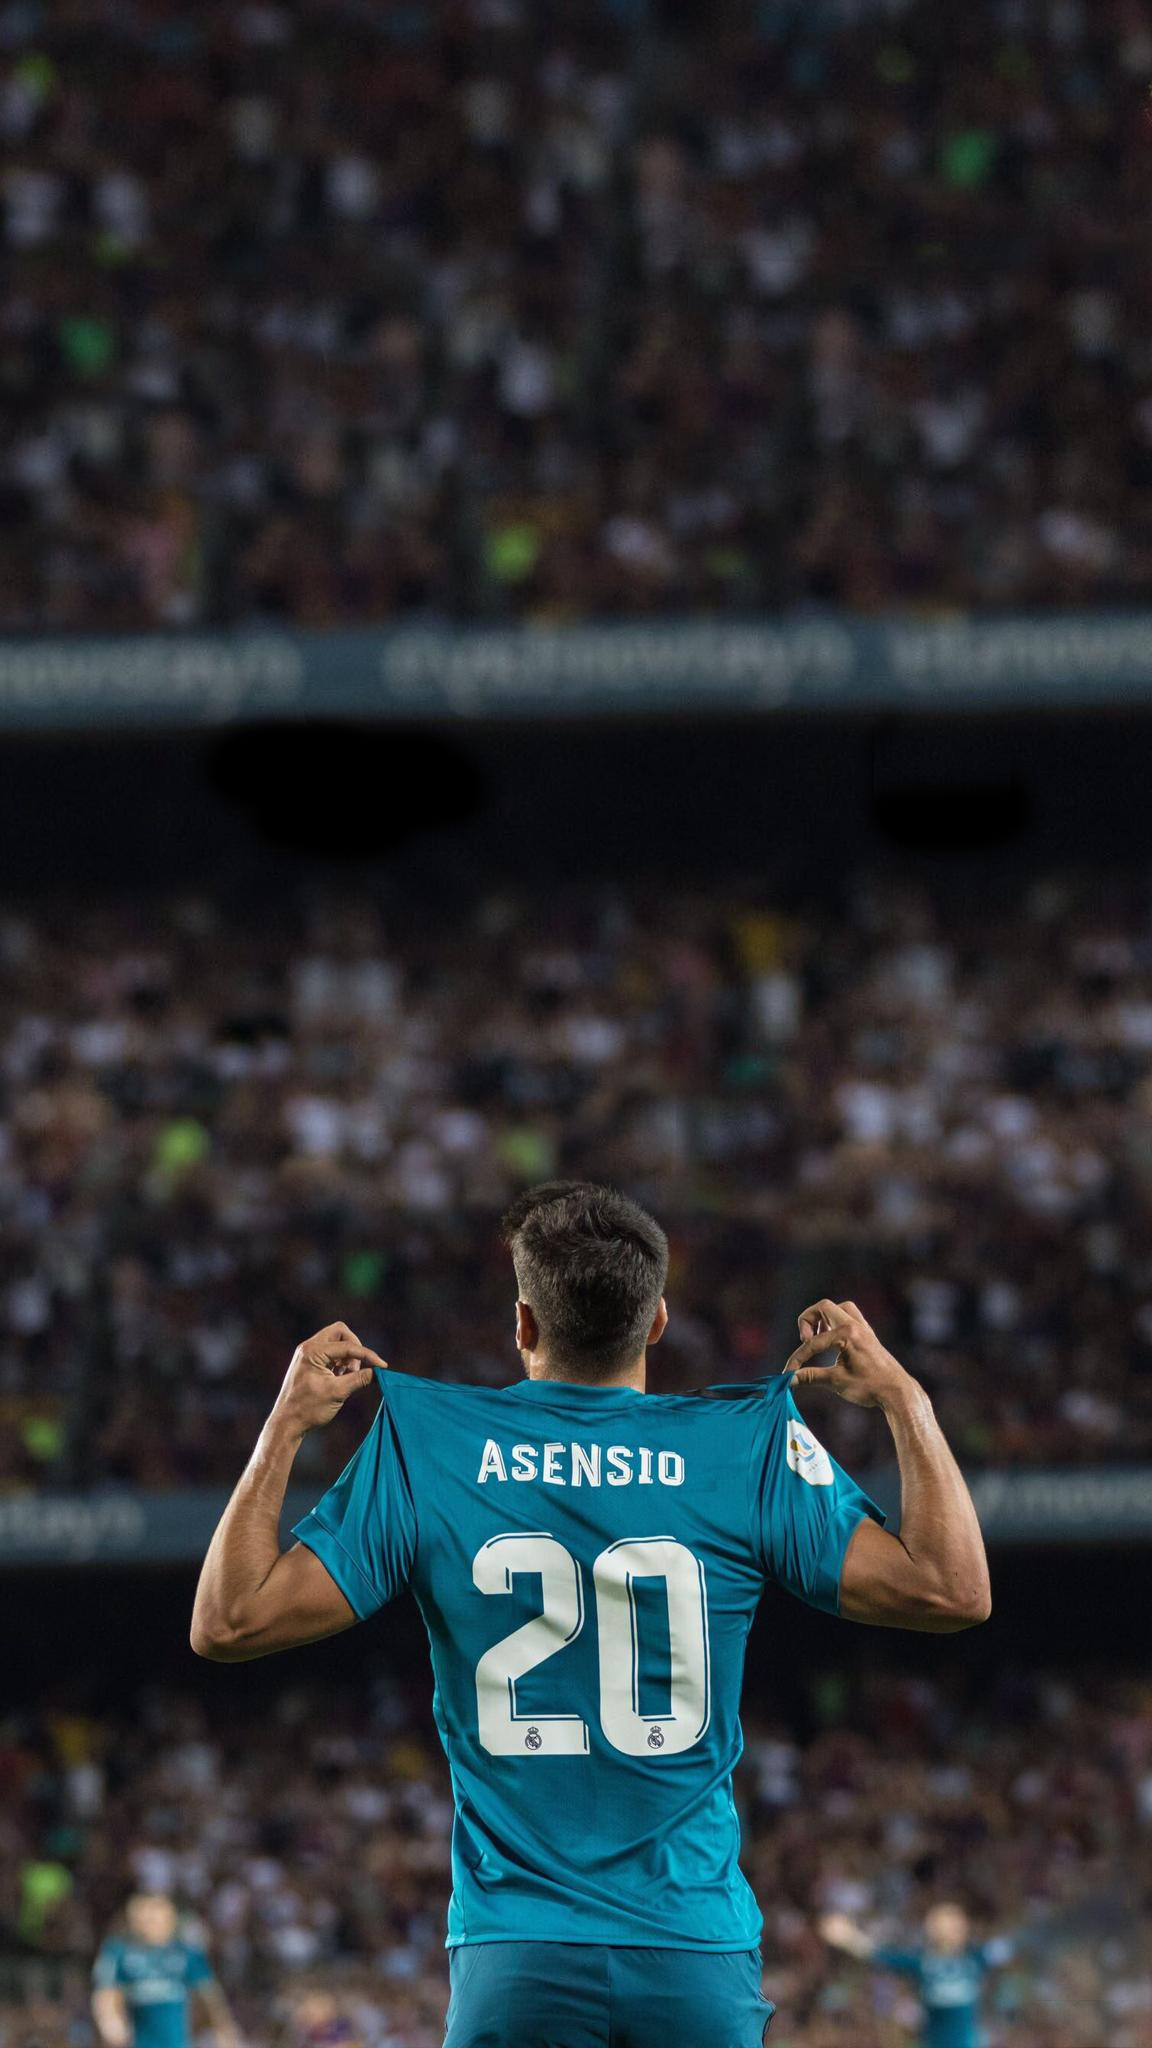 33 Asensio Wallpapers On Wallpapersafari